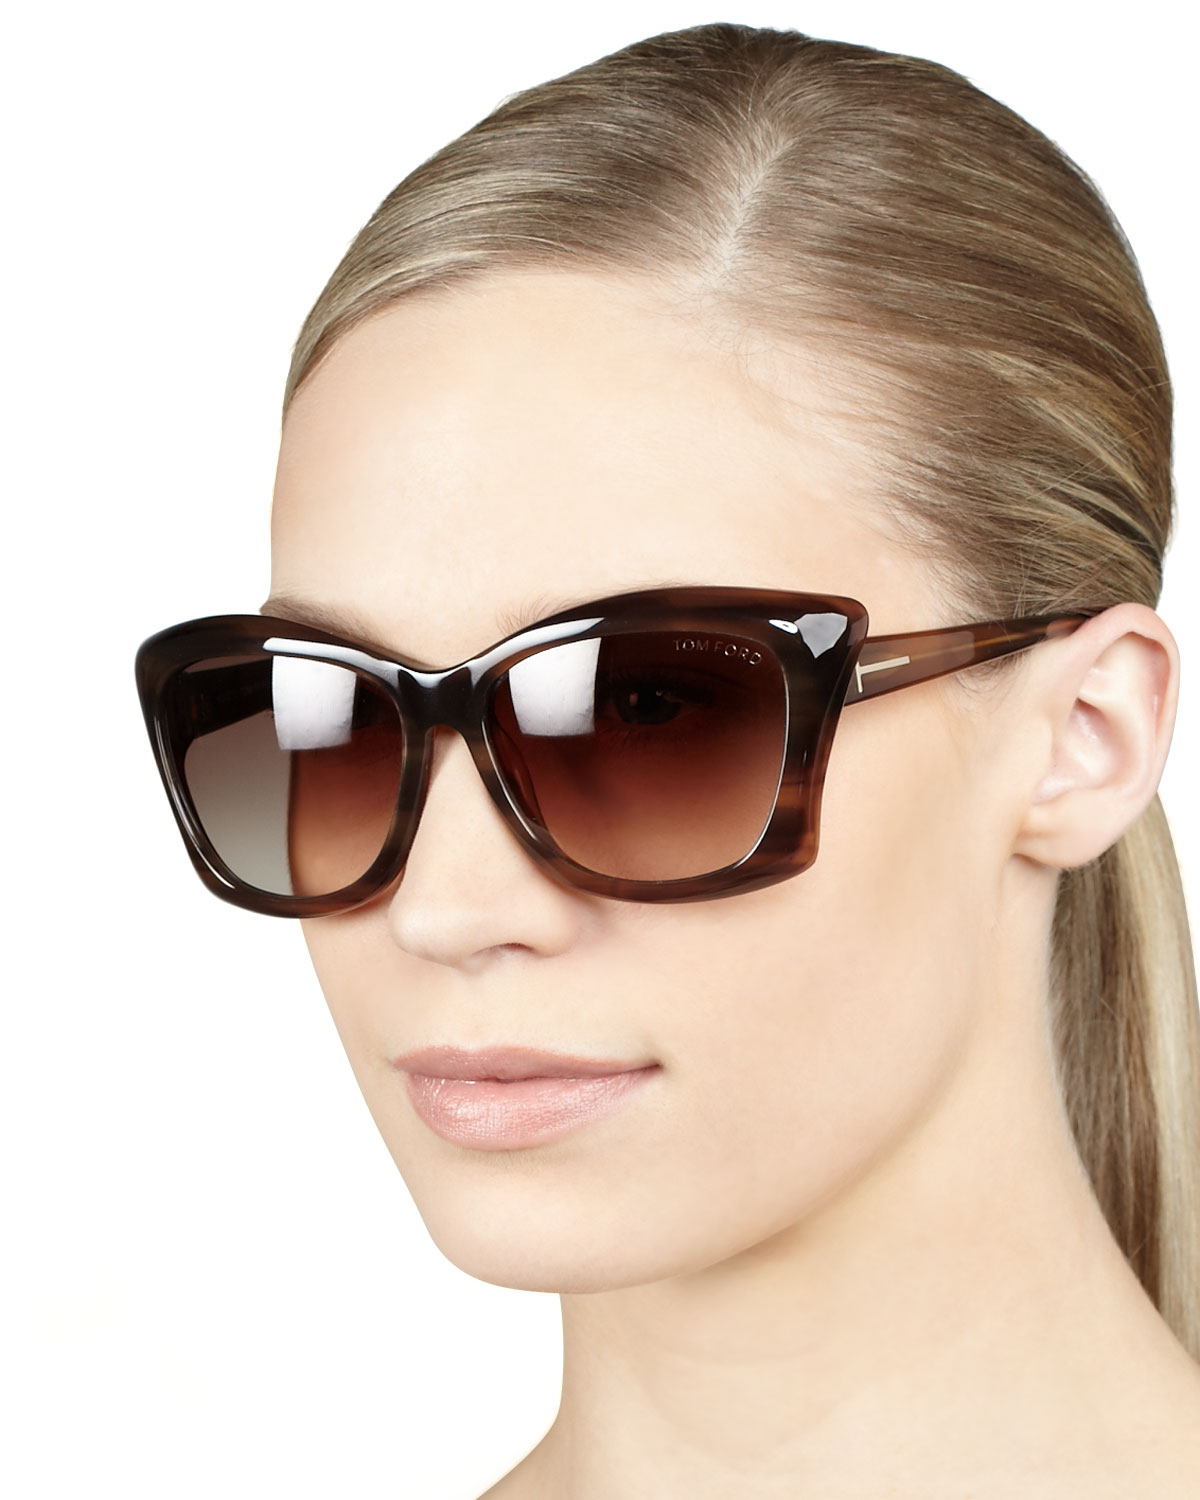 154a13f2453 Lyst - Tom Ford Lana Sunglasses Shiny Brown in Brown